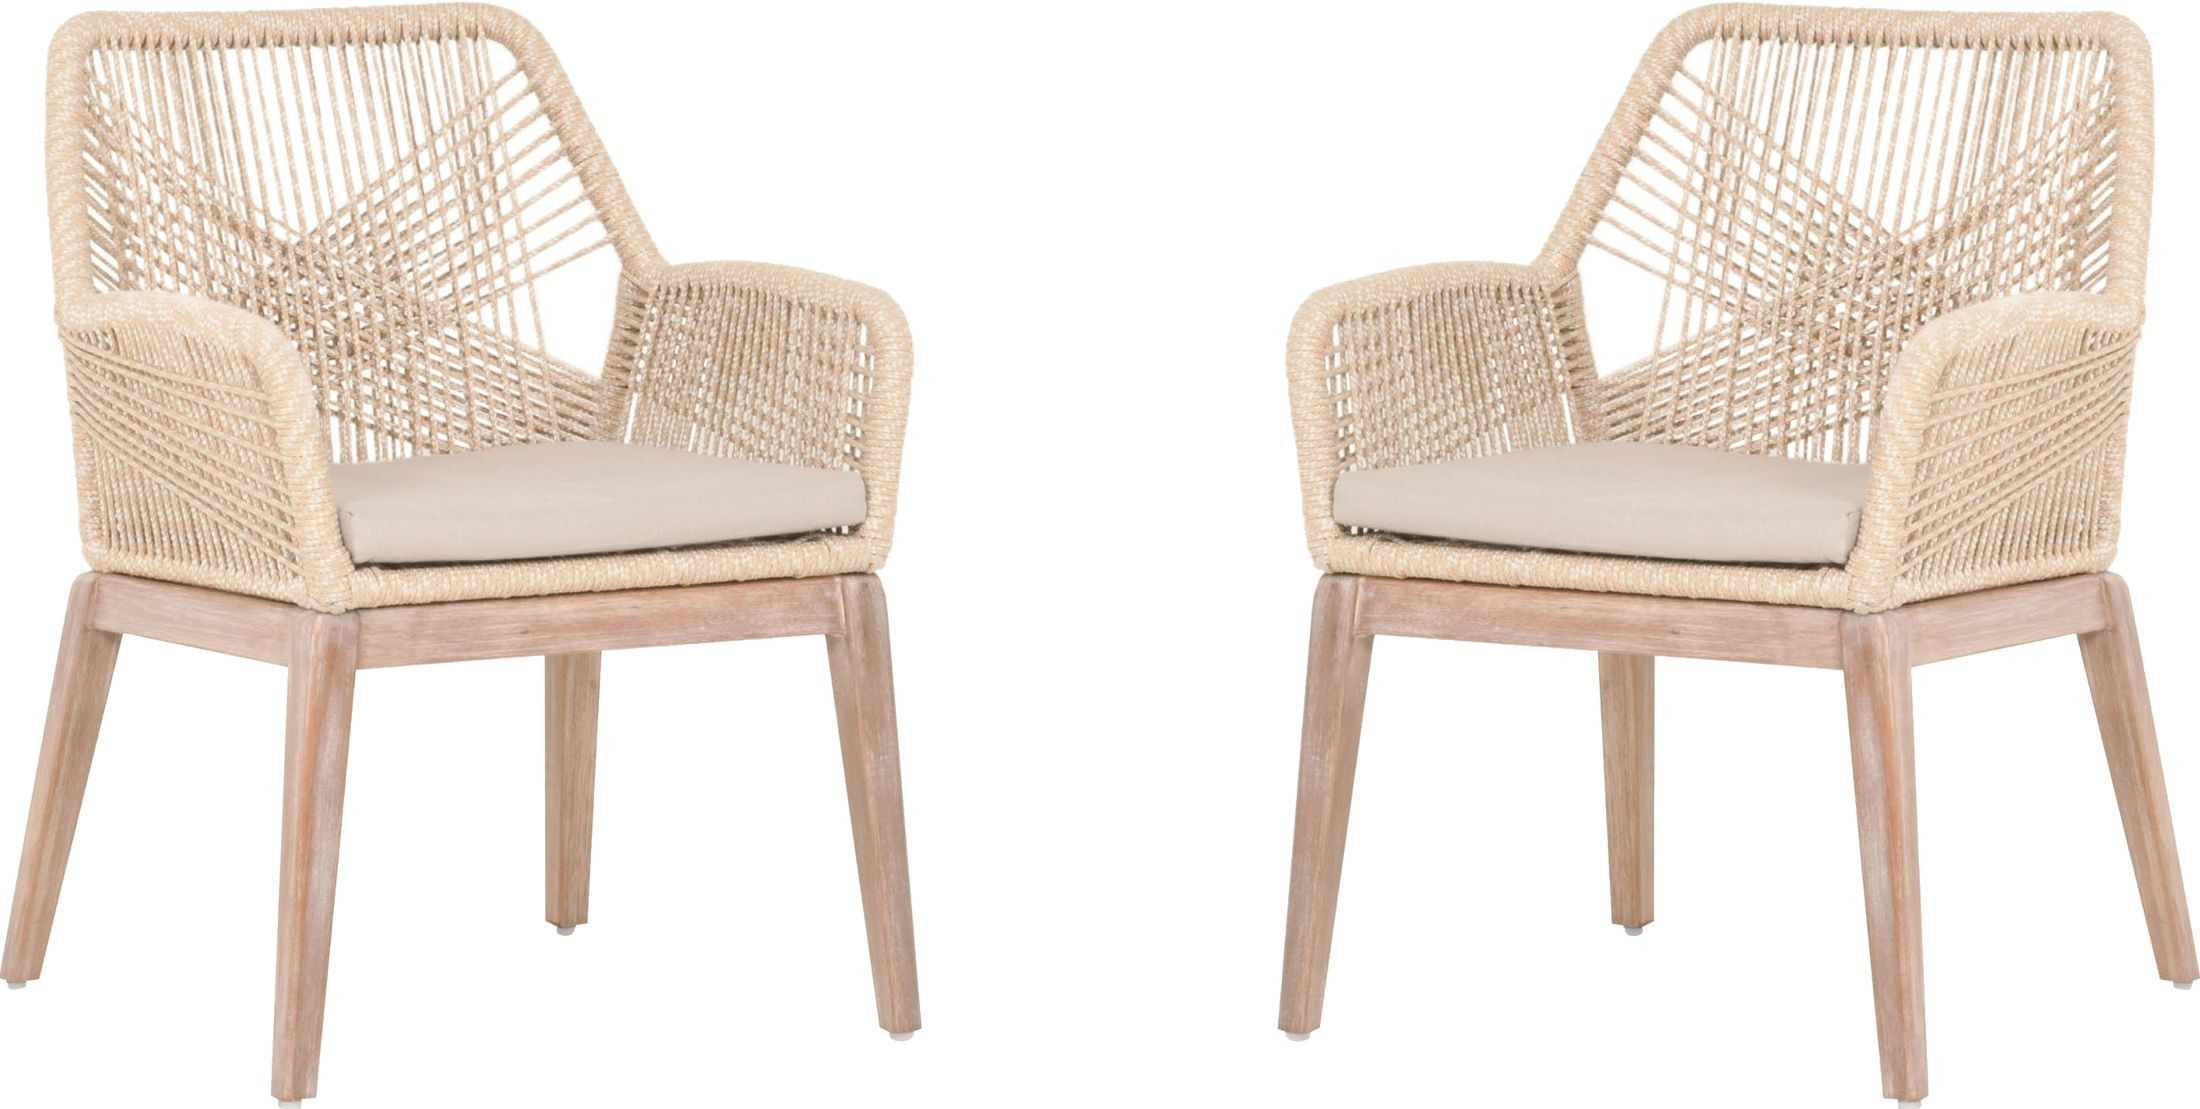 H Furniture Loom Chair Of Loom Sand Arm Chair Set Of 2 From Orient Express Coleman